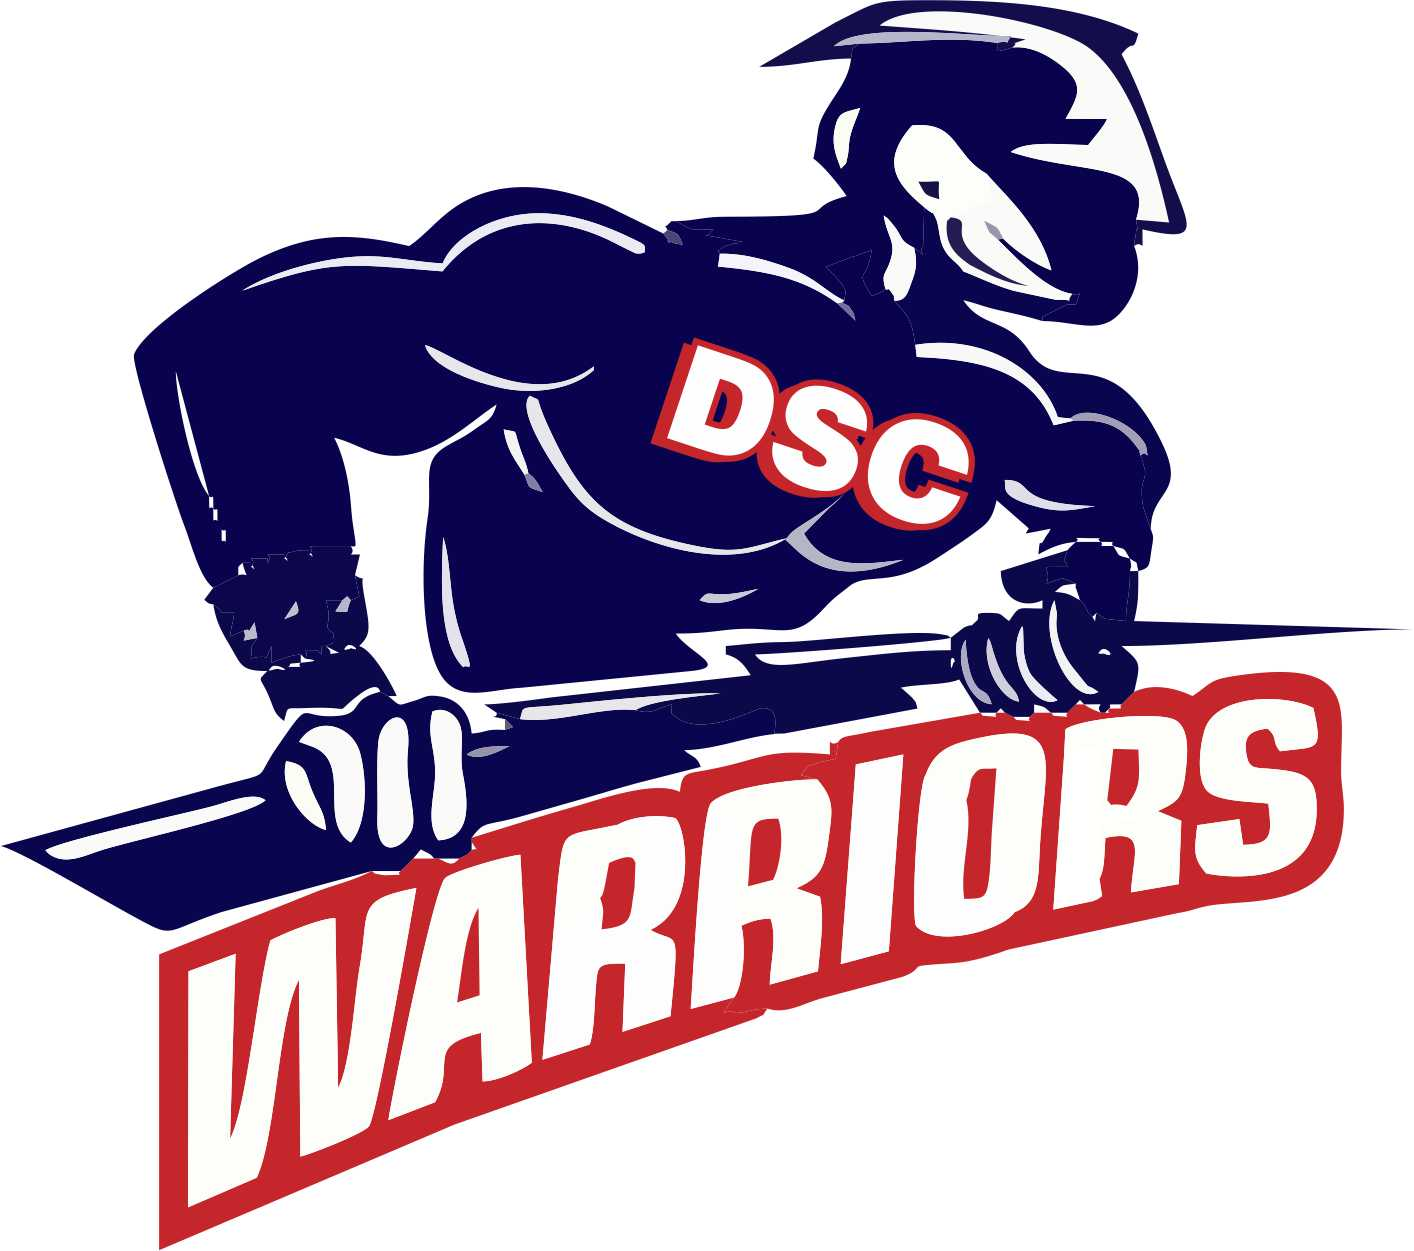 DSC Warriors